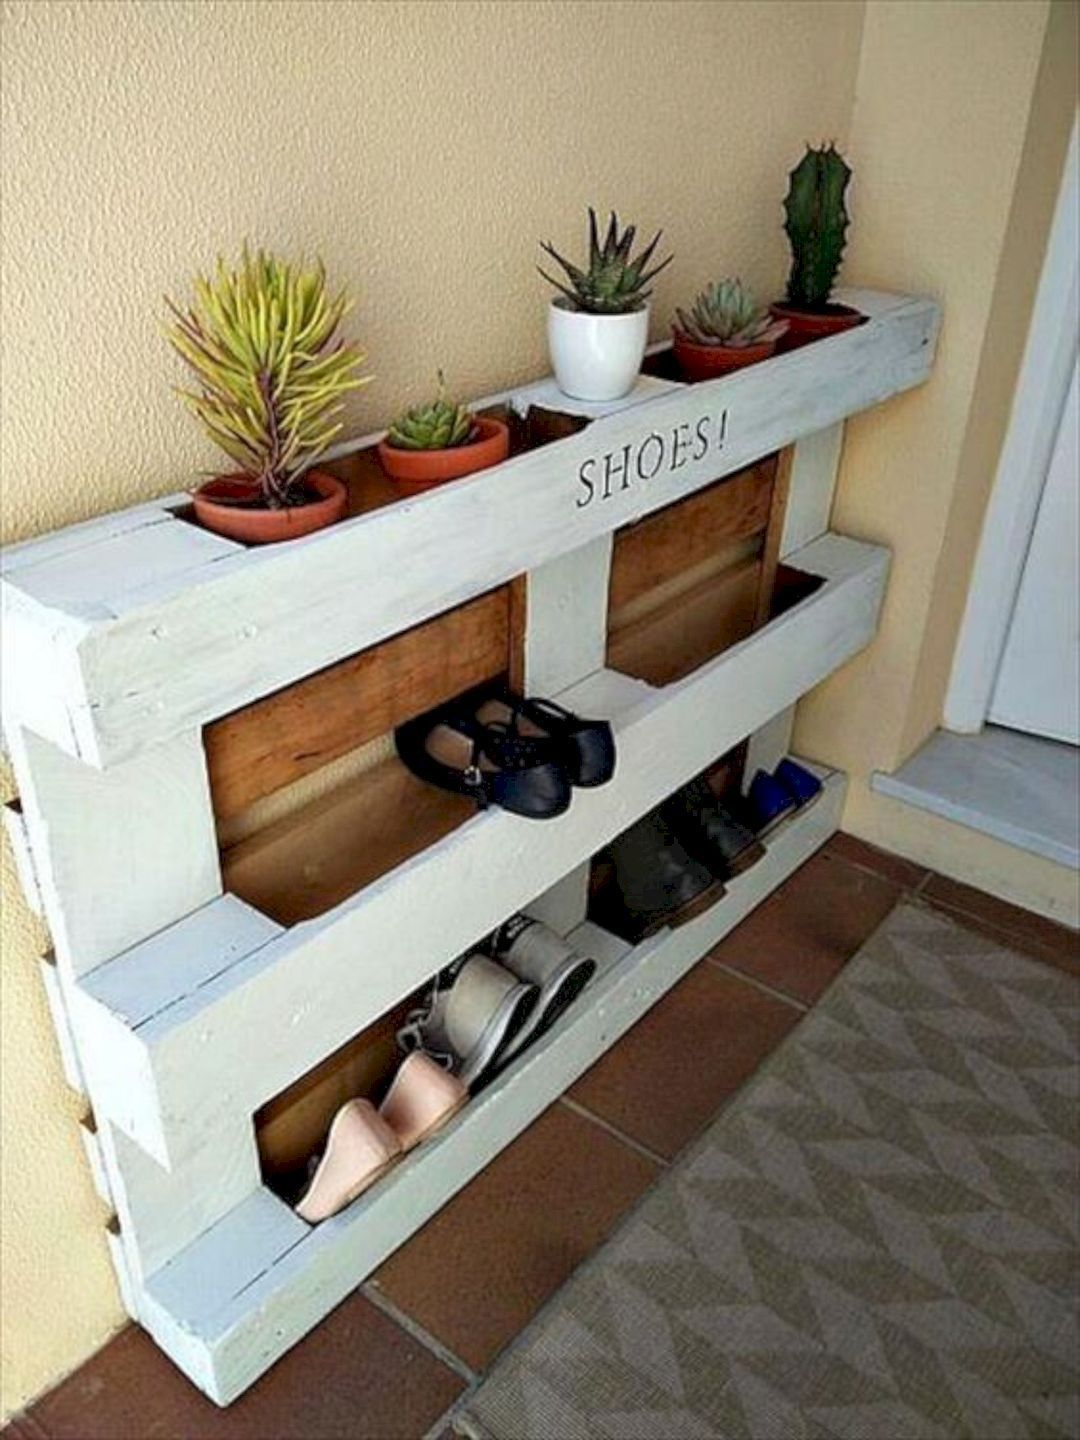 Merveilleux 16 Exceptional Recycled Furniture Ideas To Wow Your Home  Https://www.futuristarchitecture